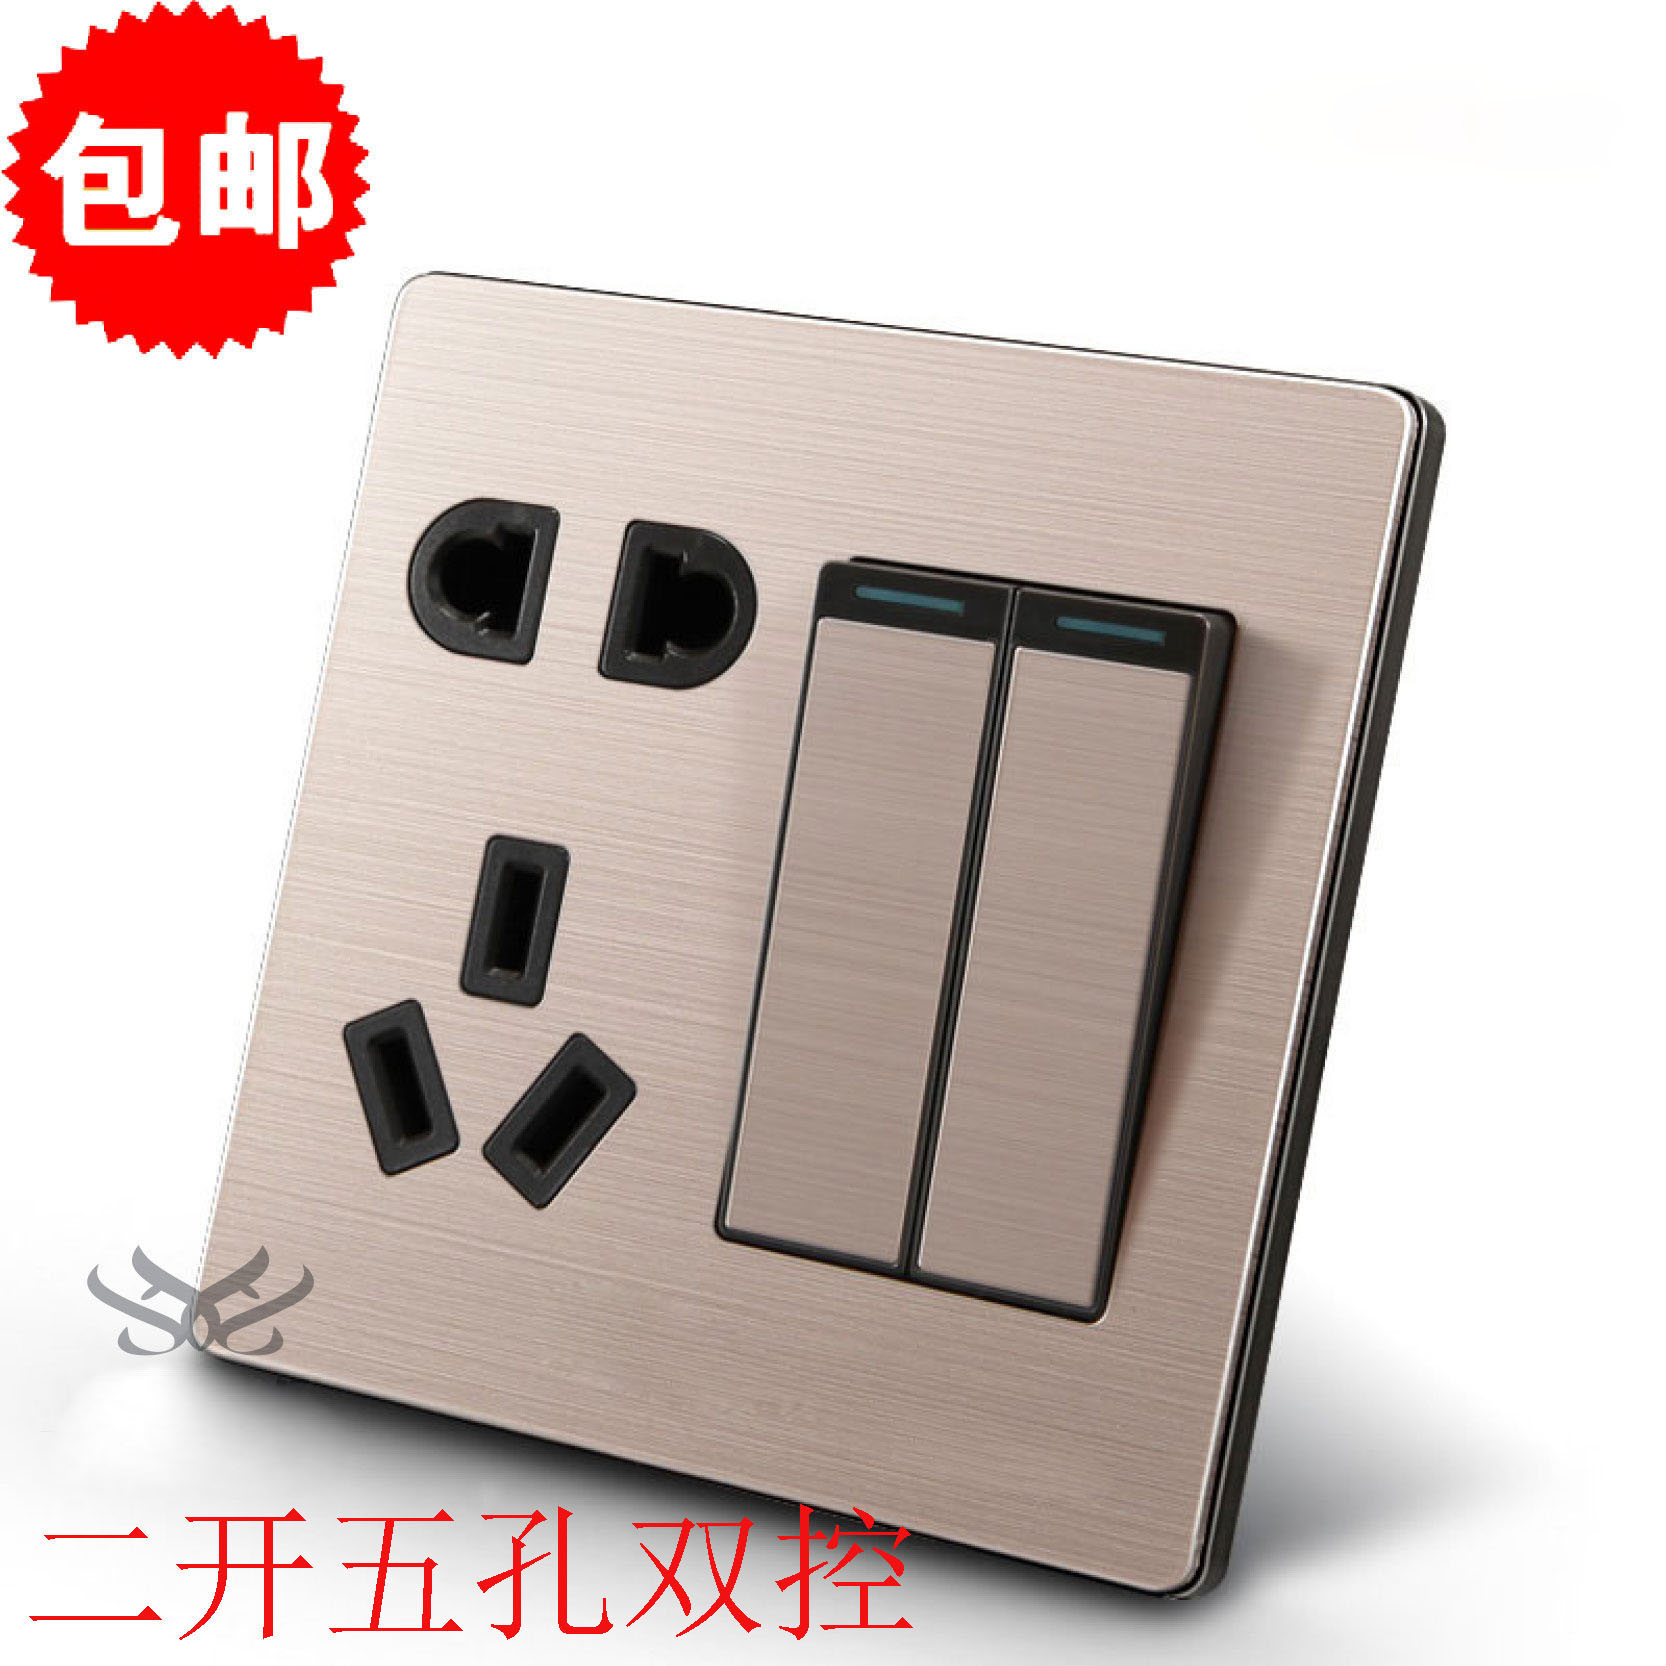 Type 86 A2 all wire drawing stainless steel rose gold, two open five hole socket, two position switch, double control five hole socket